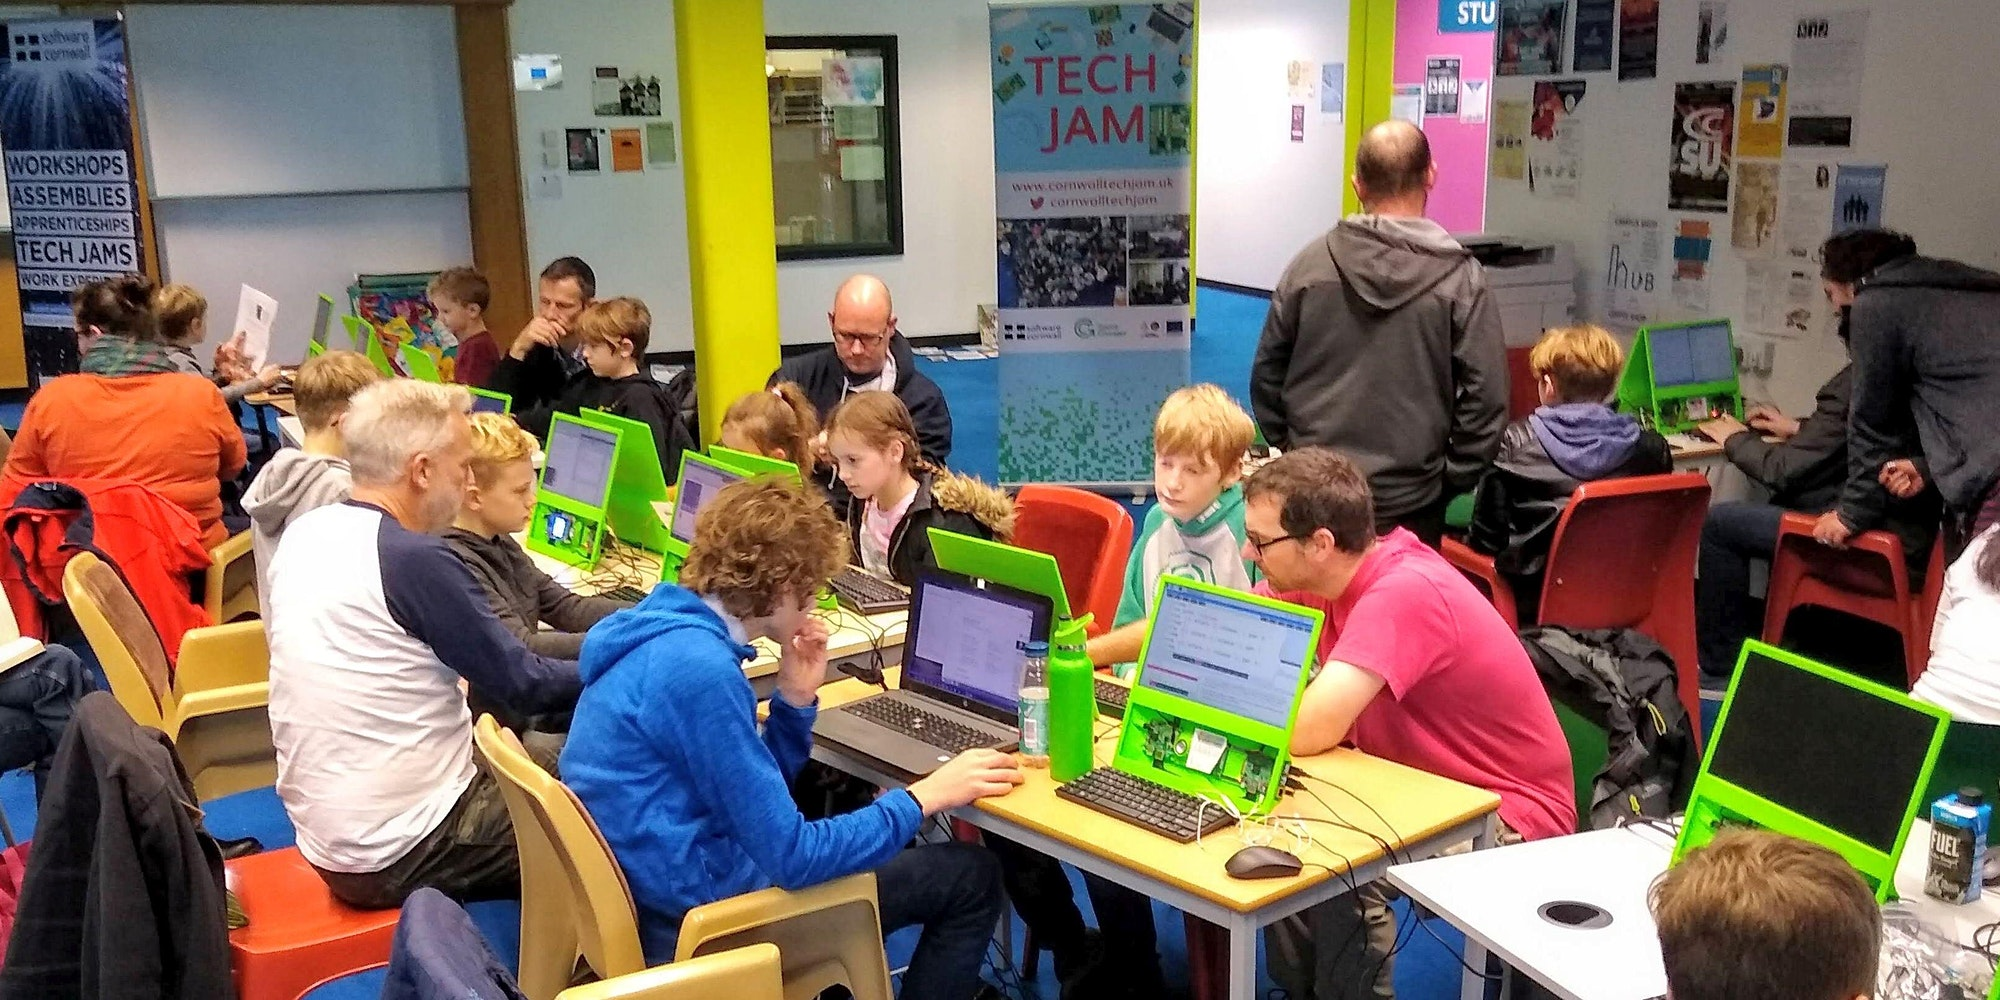 Children coding at computers